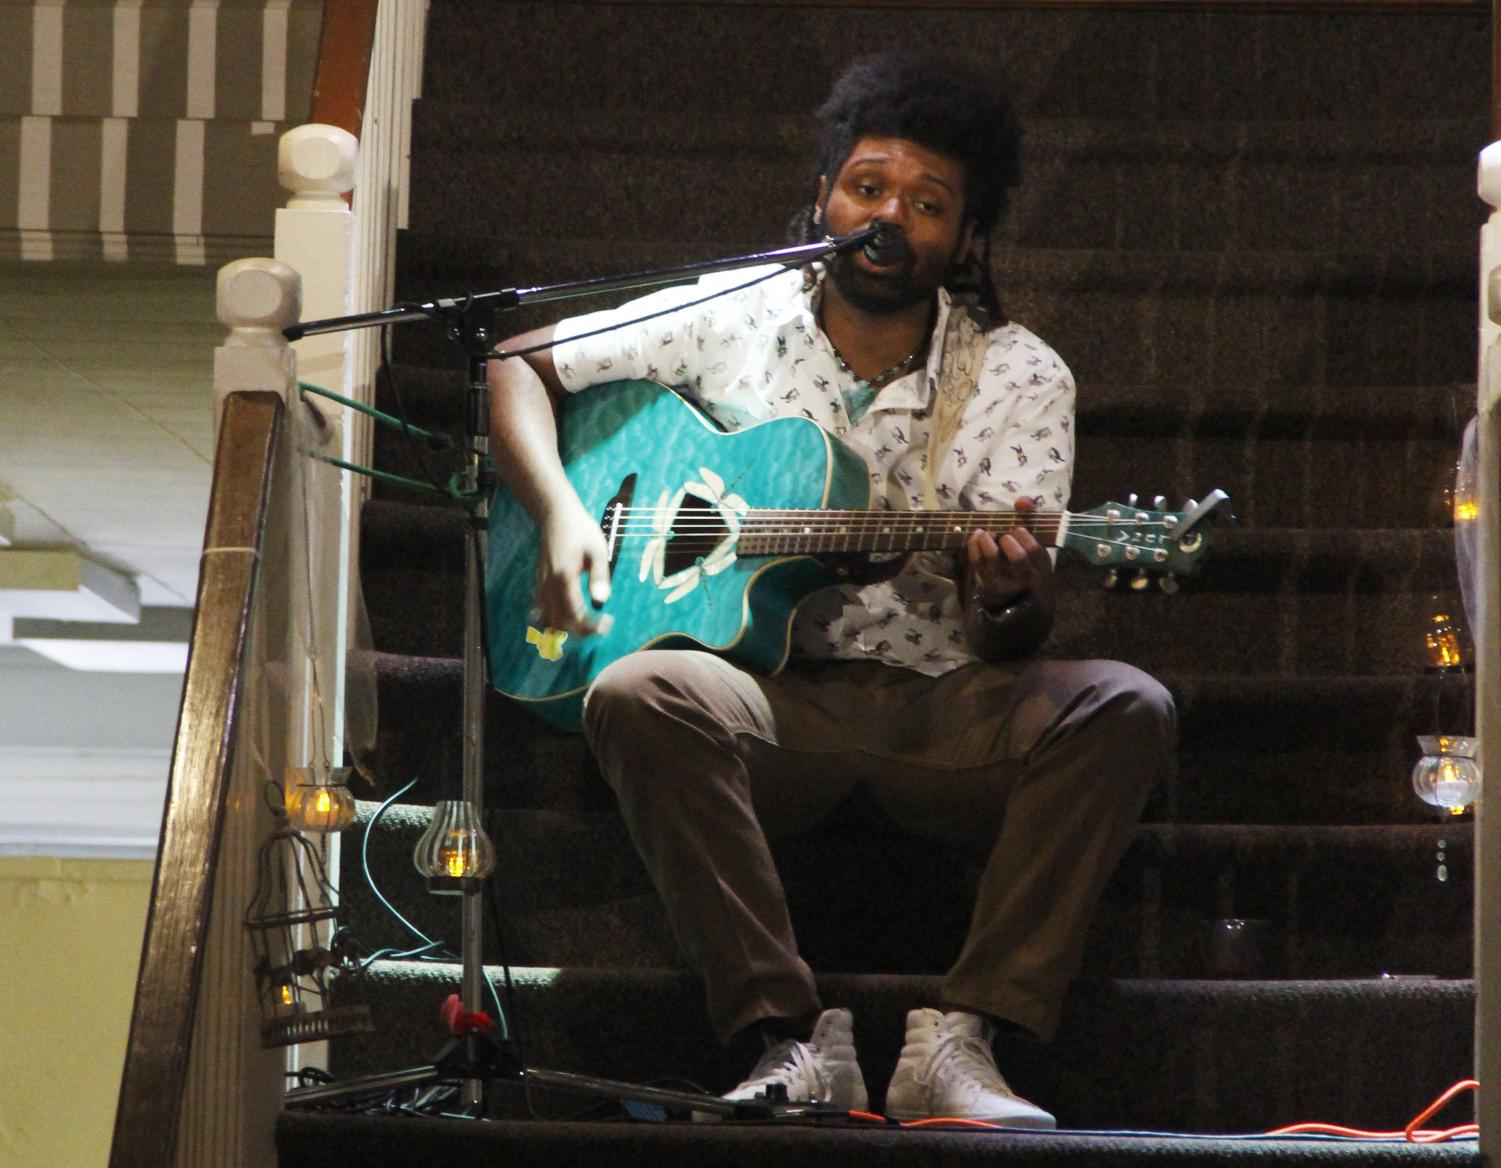 Ameal Cameron, an alumnus, publicized his new album through his performance at the Hammond Regional Arts Center.